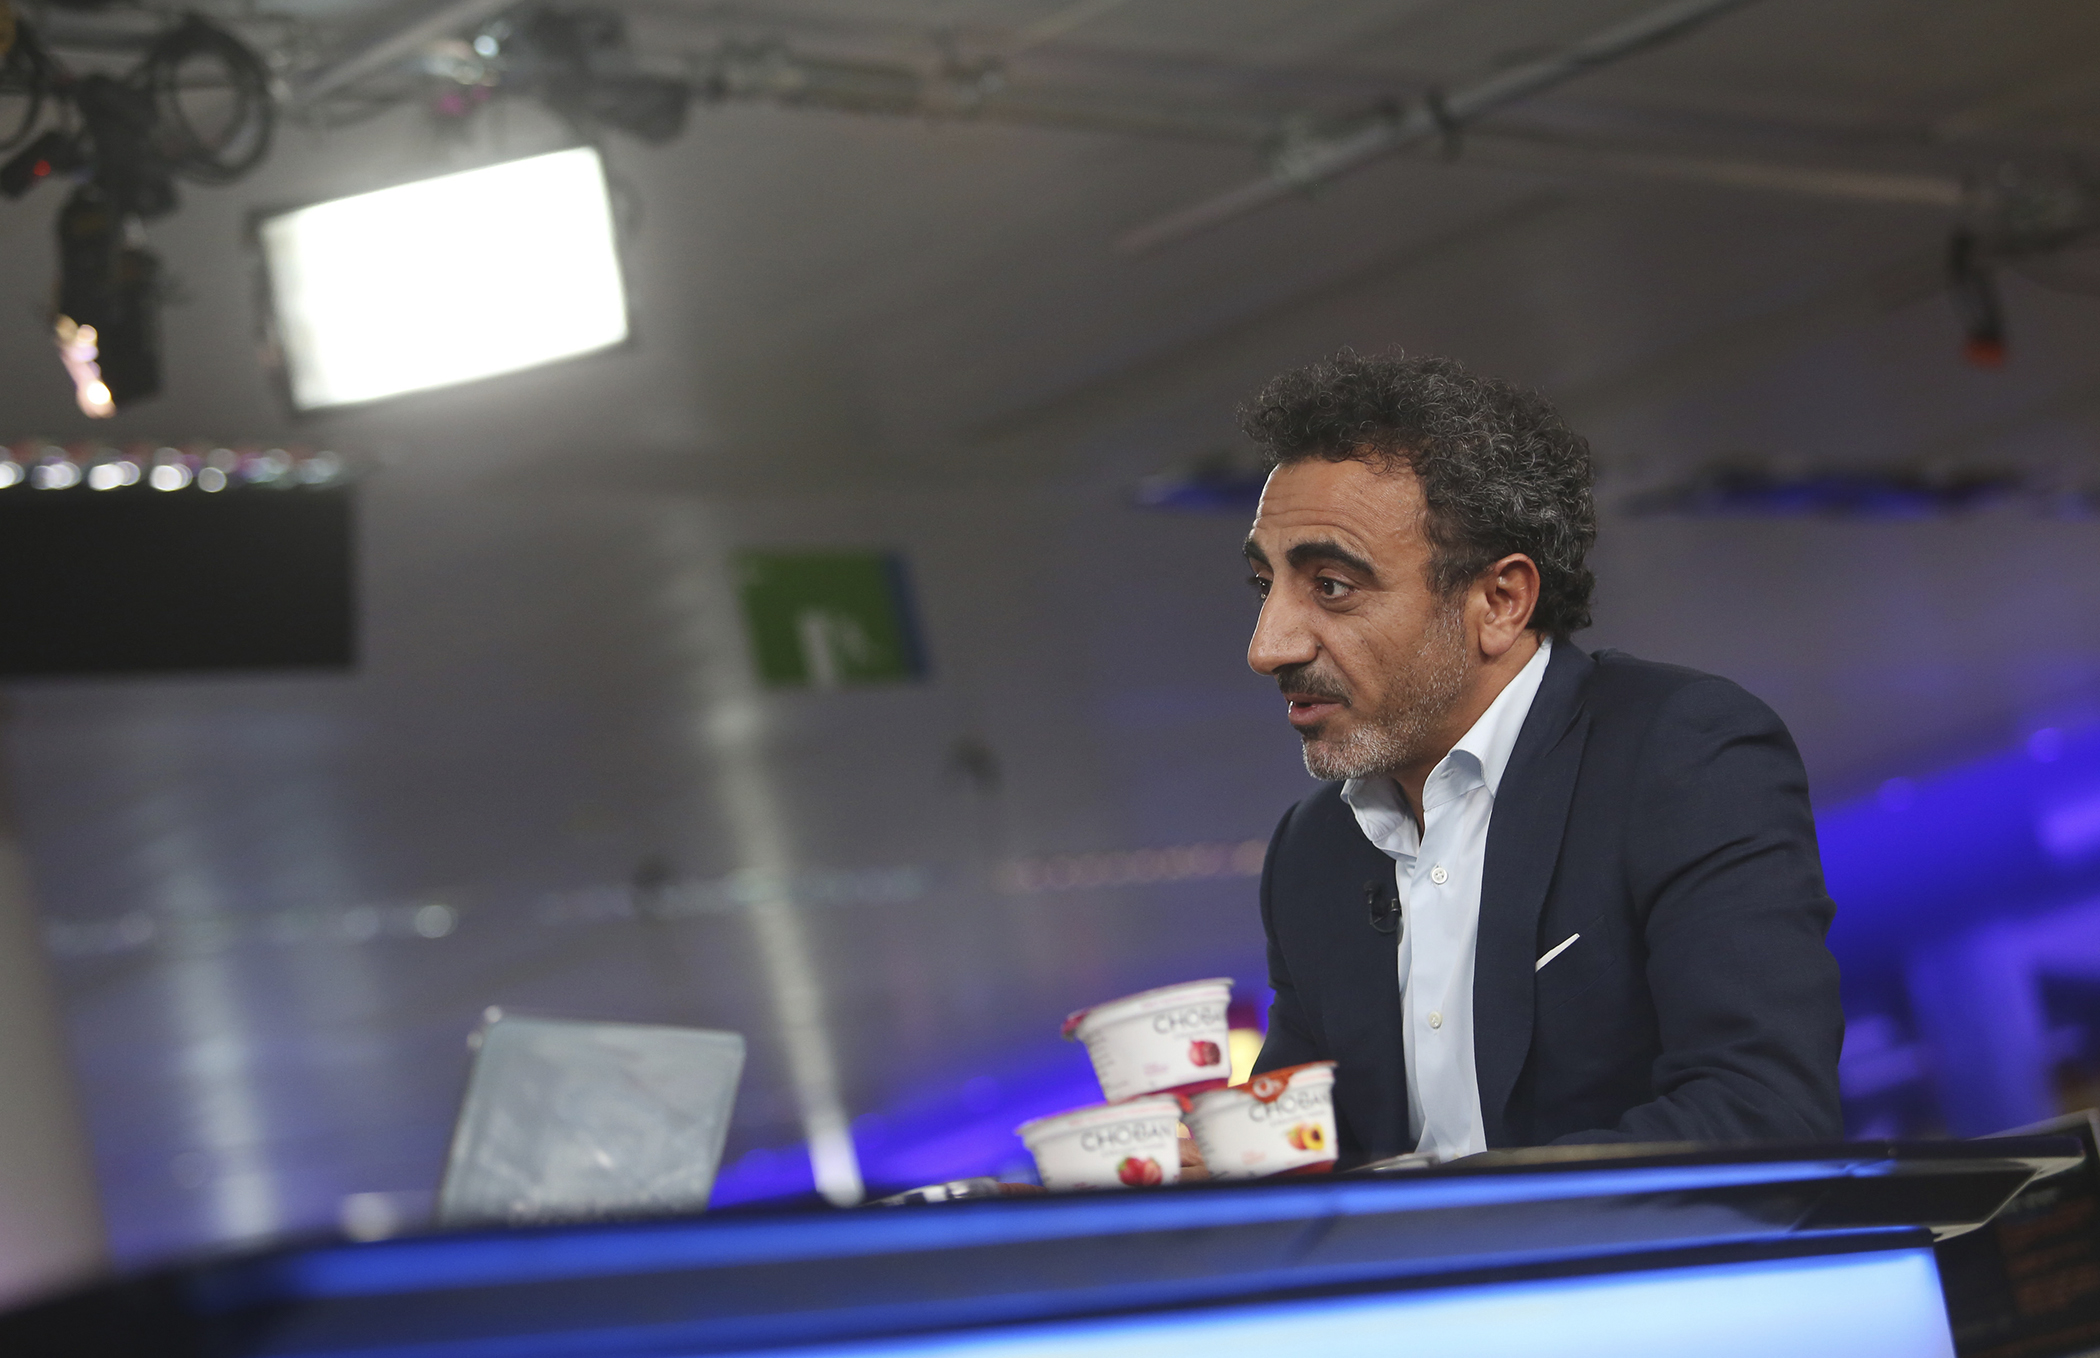 Hamdi Ulukaya, CEO of Chobani Inc., speaks during a Bloomberg Television interview in London on July 17, 2013.